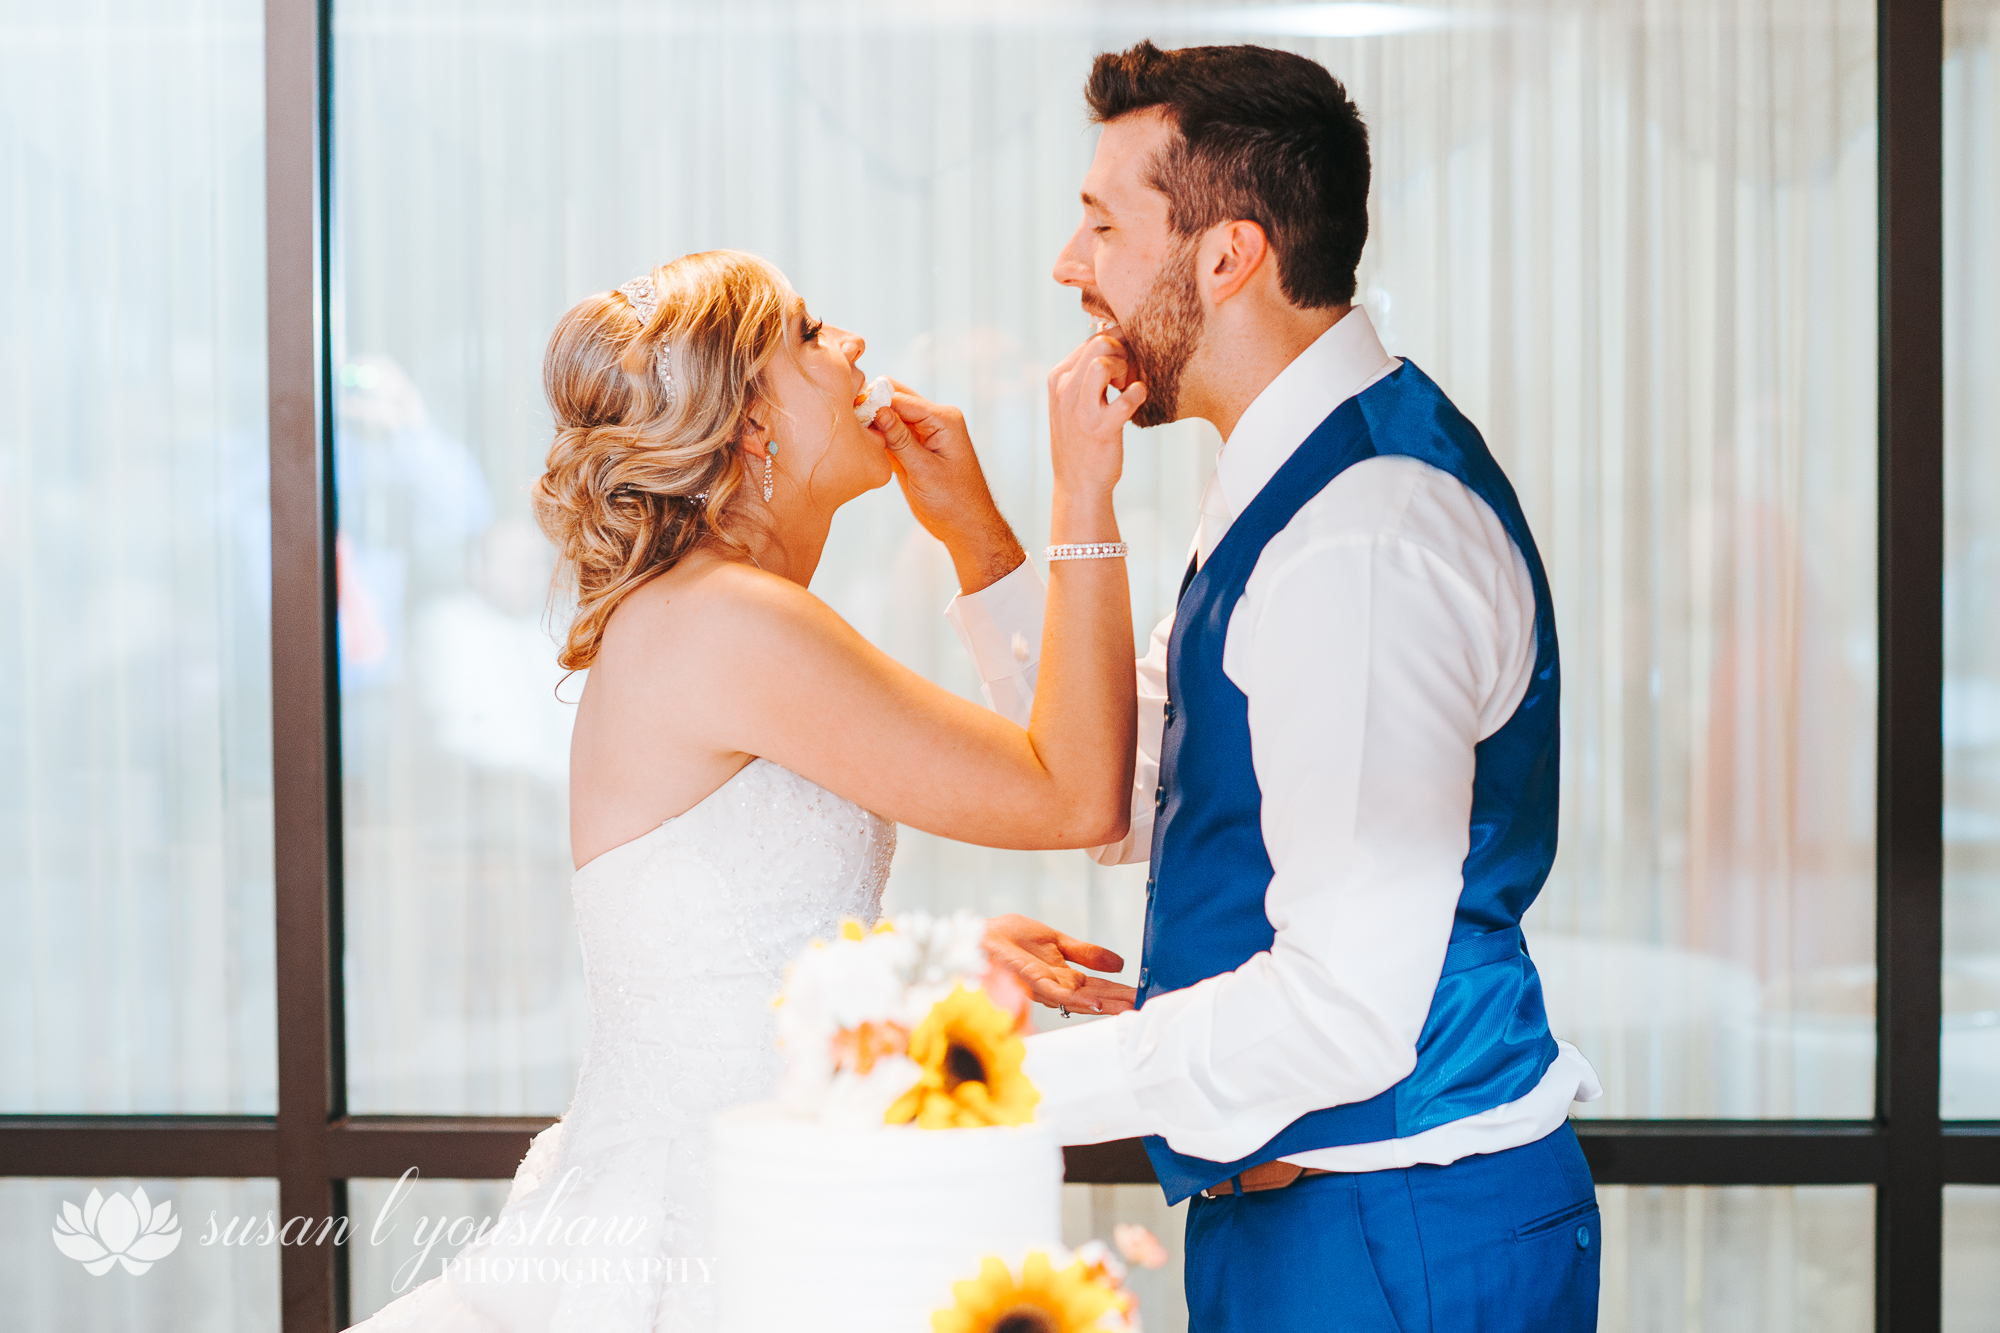 BLOG Kylie and corey Bennet 10-13-2018 SLY Photography LLC-156.jpg